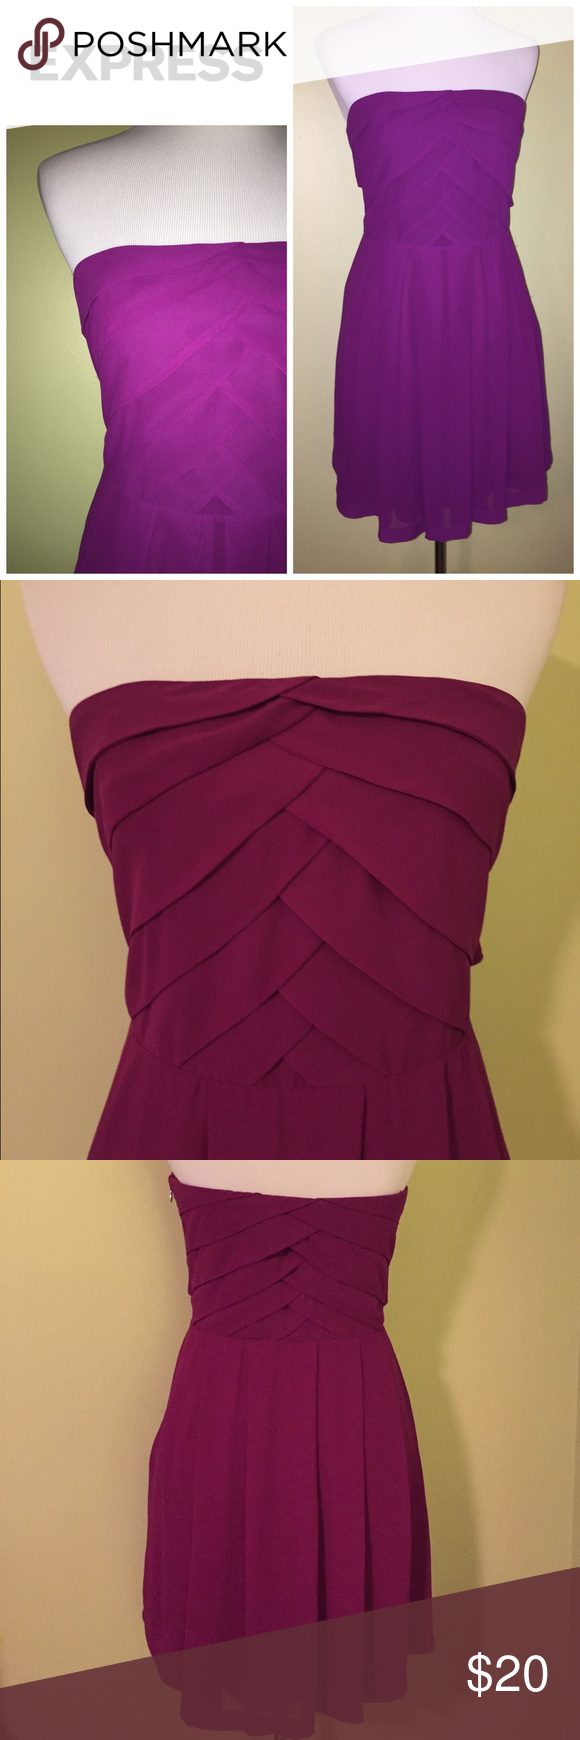 Express strapless dress strapless dress express dresses and